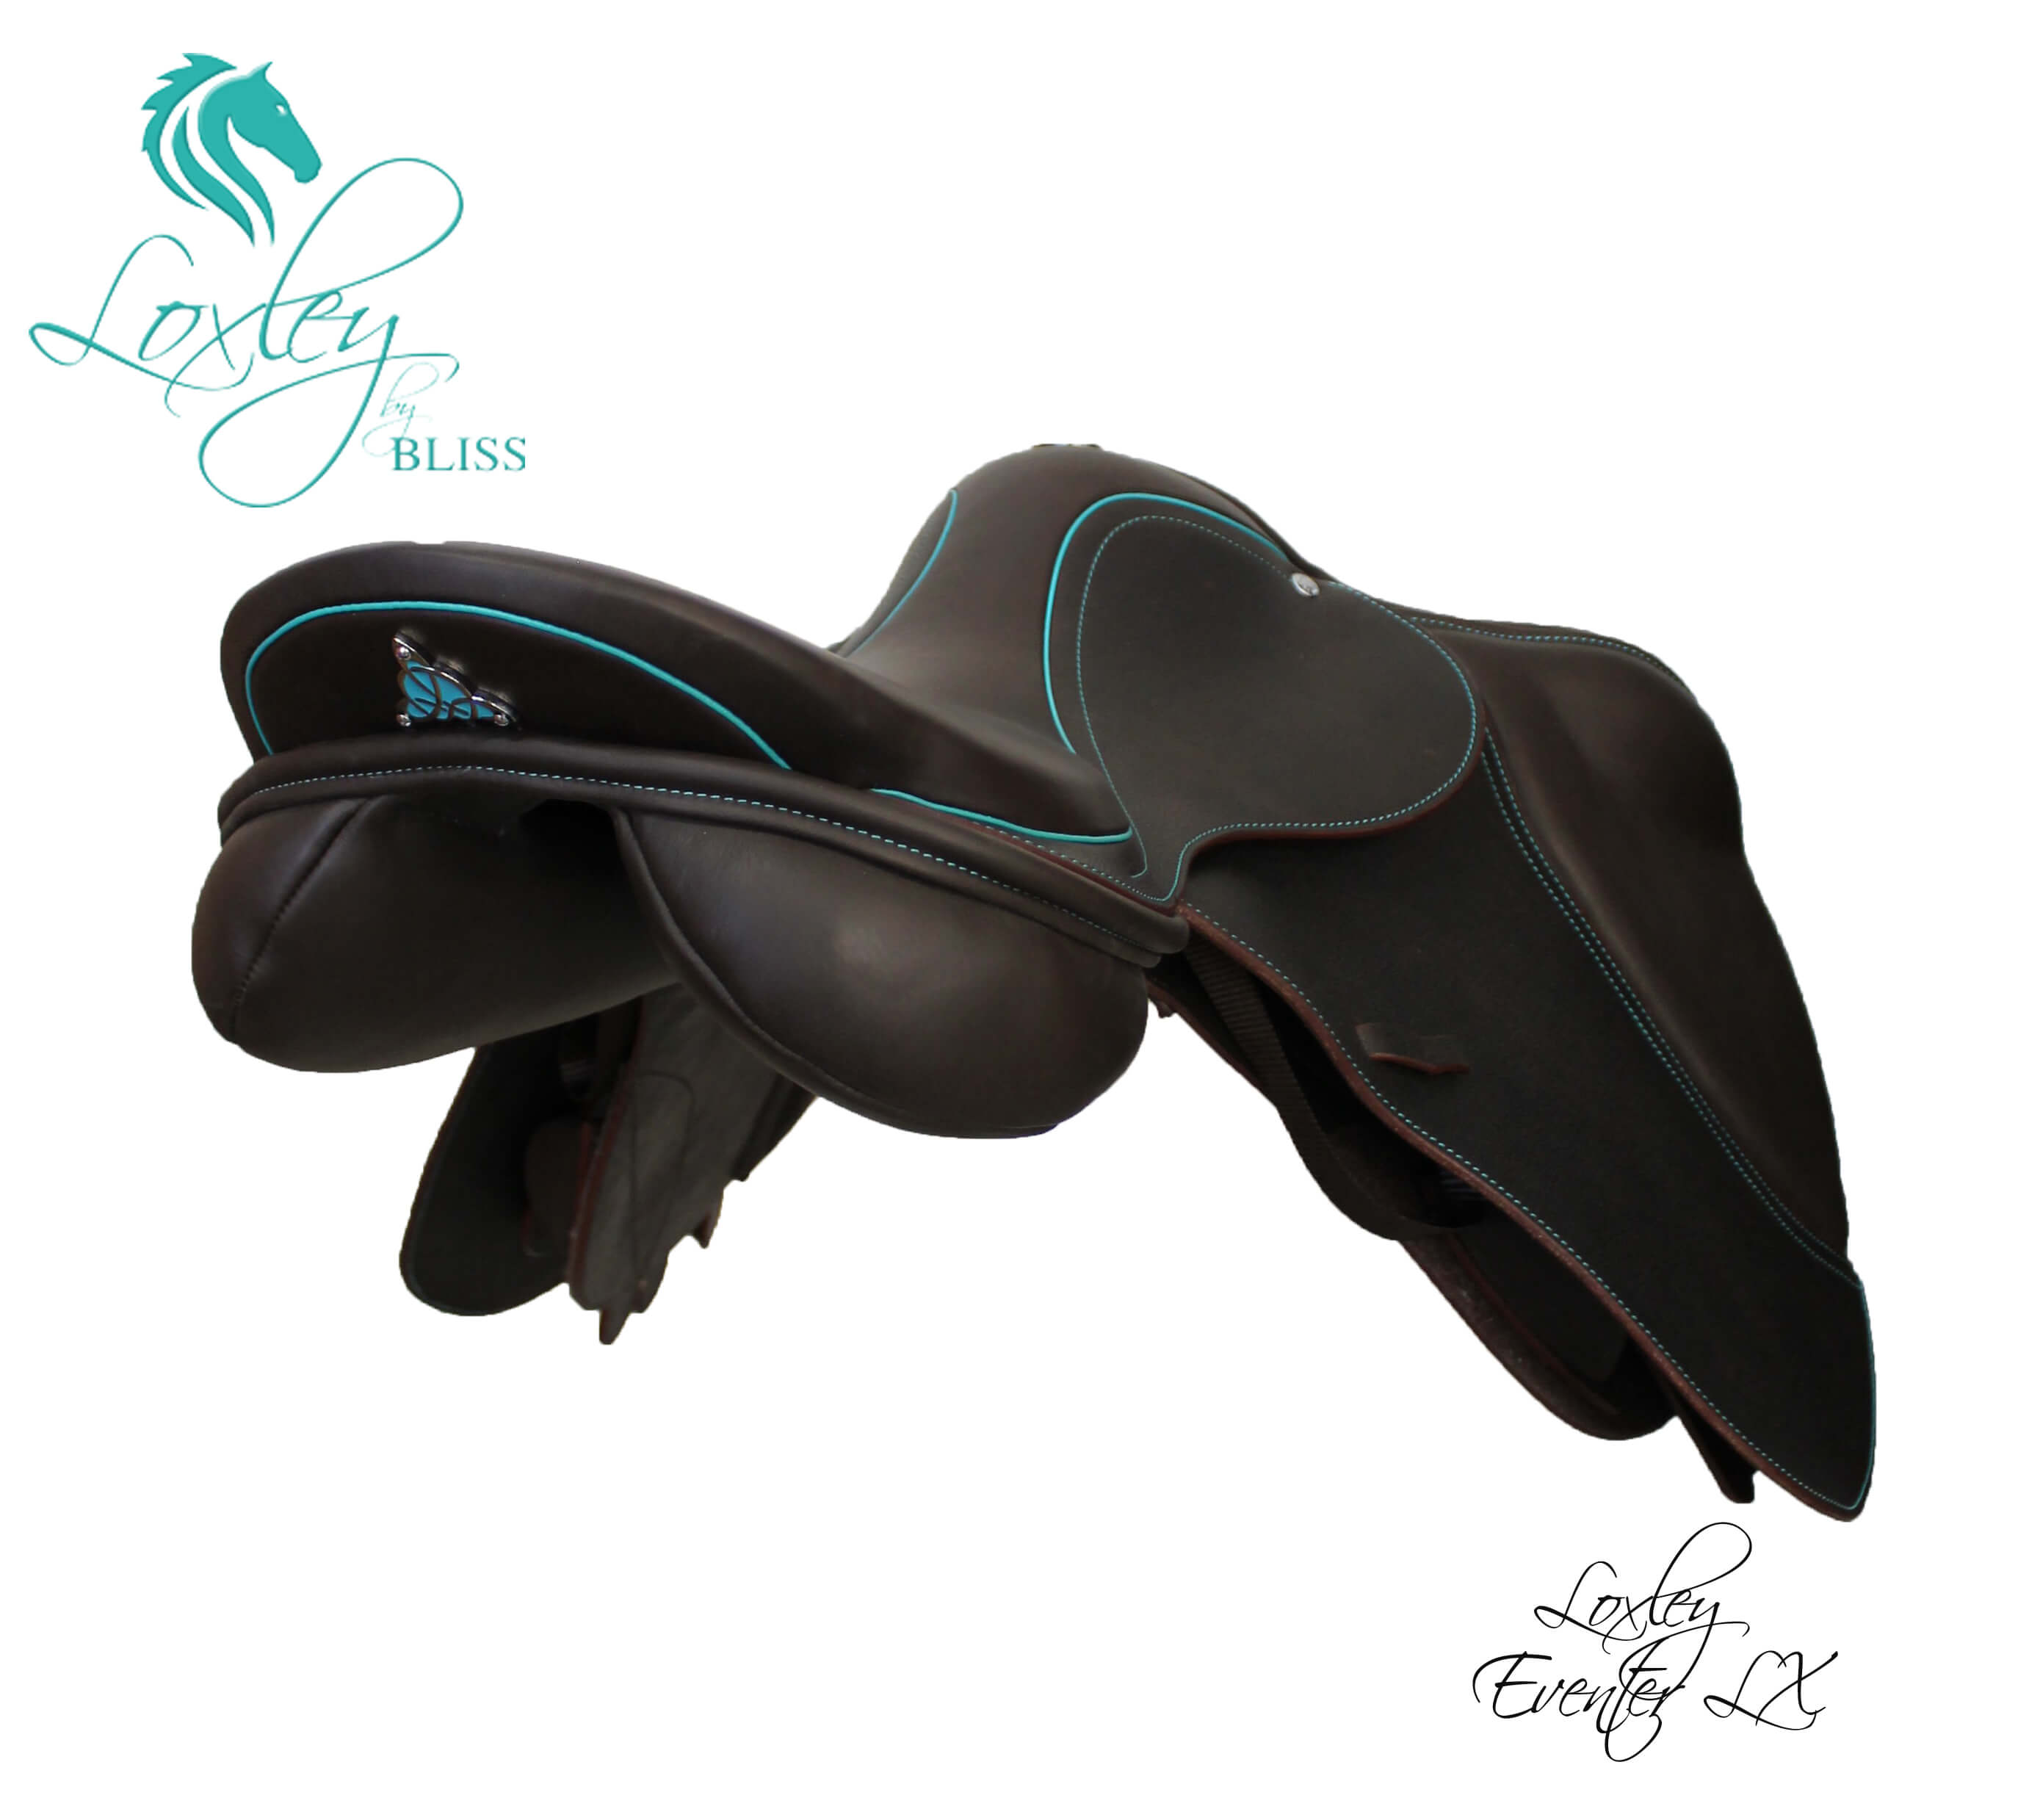 3 Cocoa & Teal eventer LX side angle Loxley Saddle Image Template